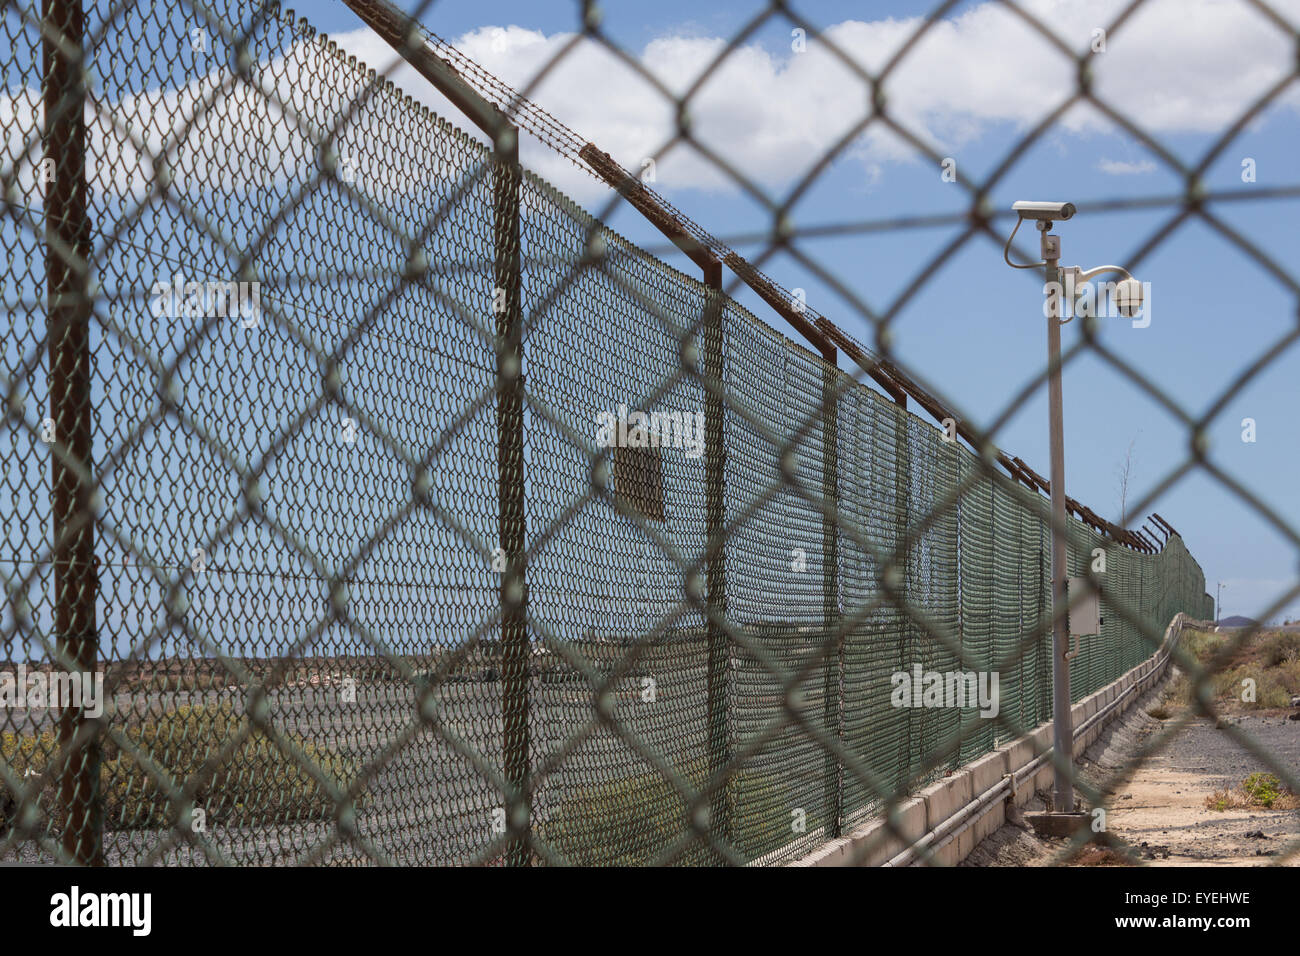 guarded border security fence and cameras stock photo 85758554